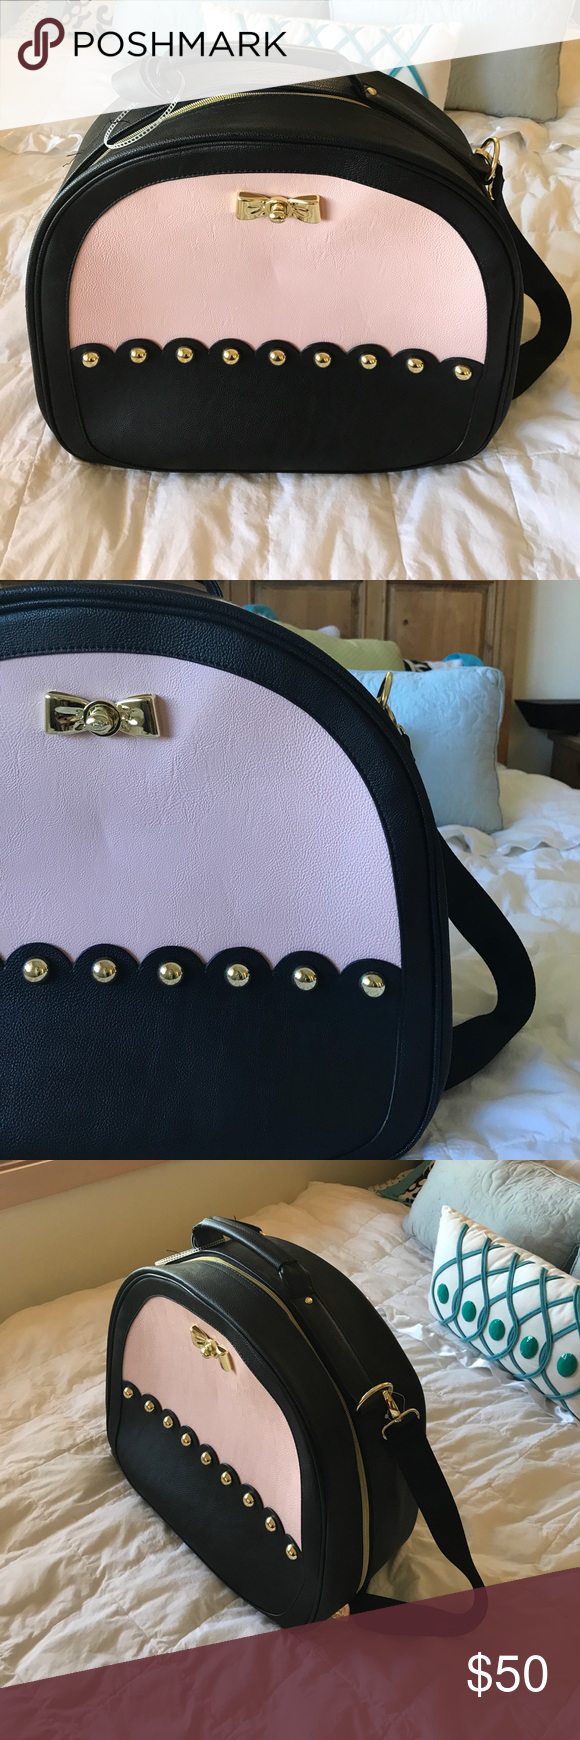 Betsey Johnson Small Carry On Only used once. Beautiful little carry on! Betsey Johnson Bags Travel Bags